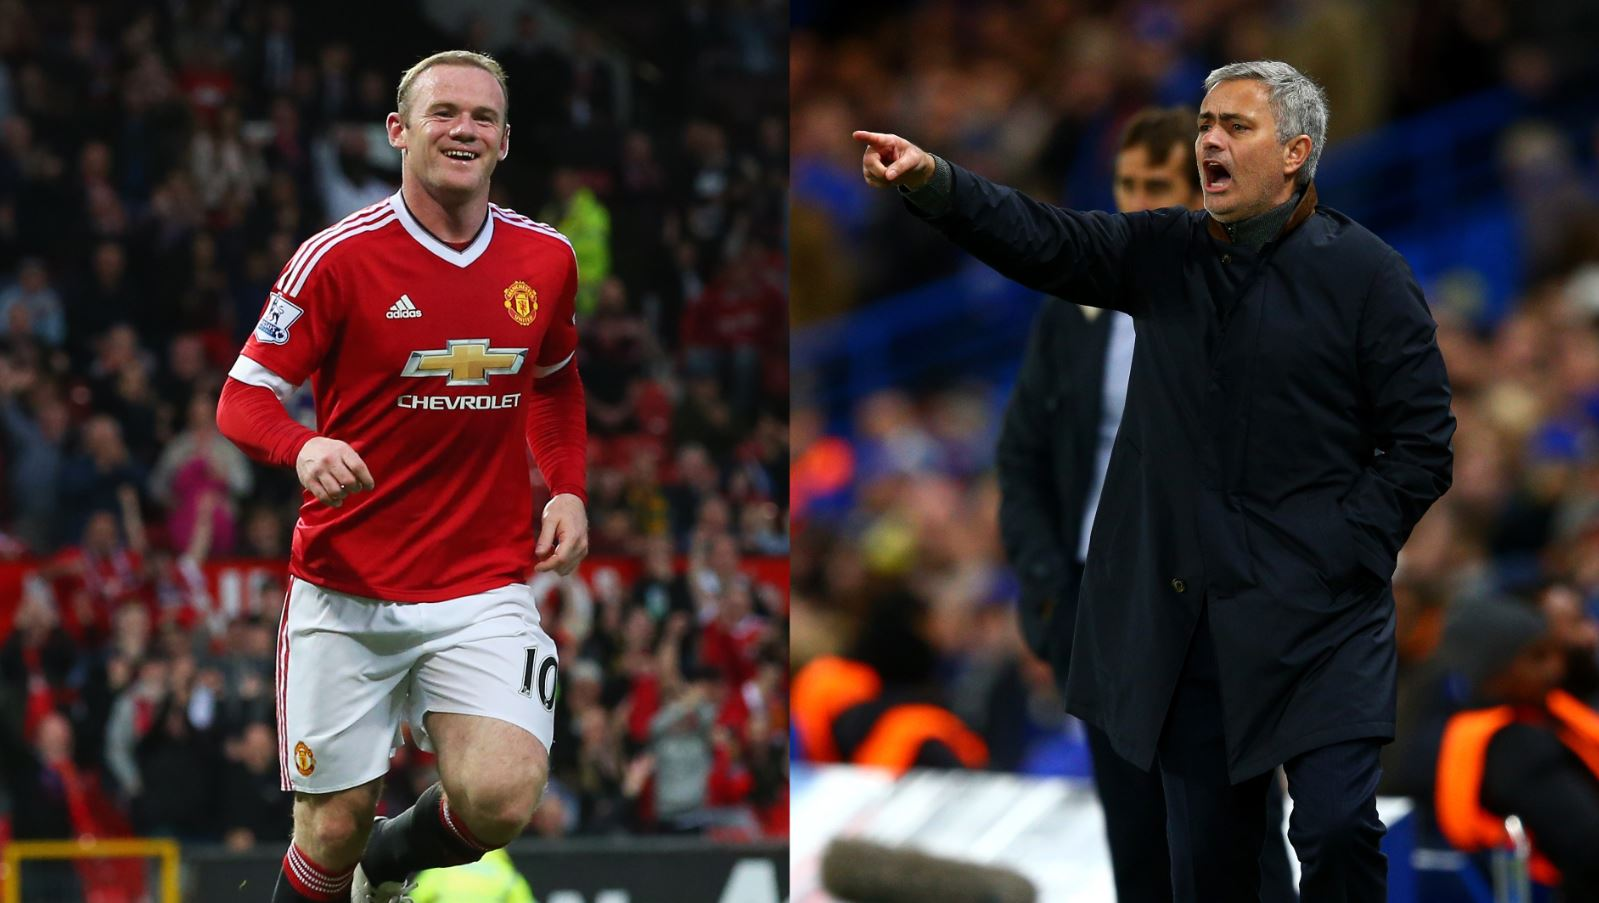 Wayne Rooney and Jose Mourinho